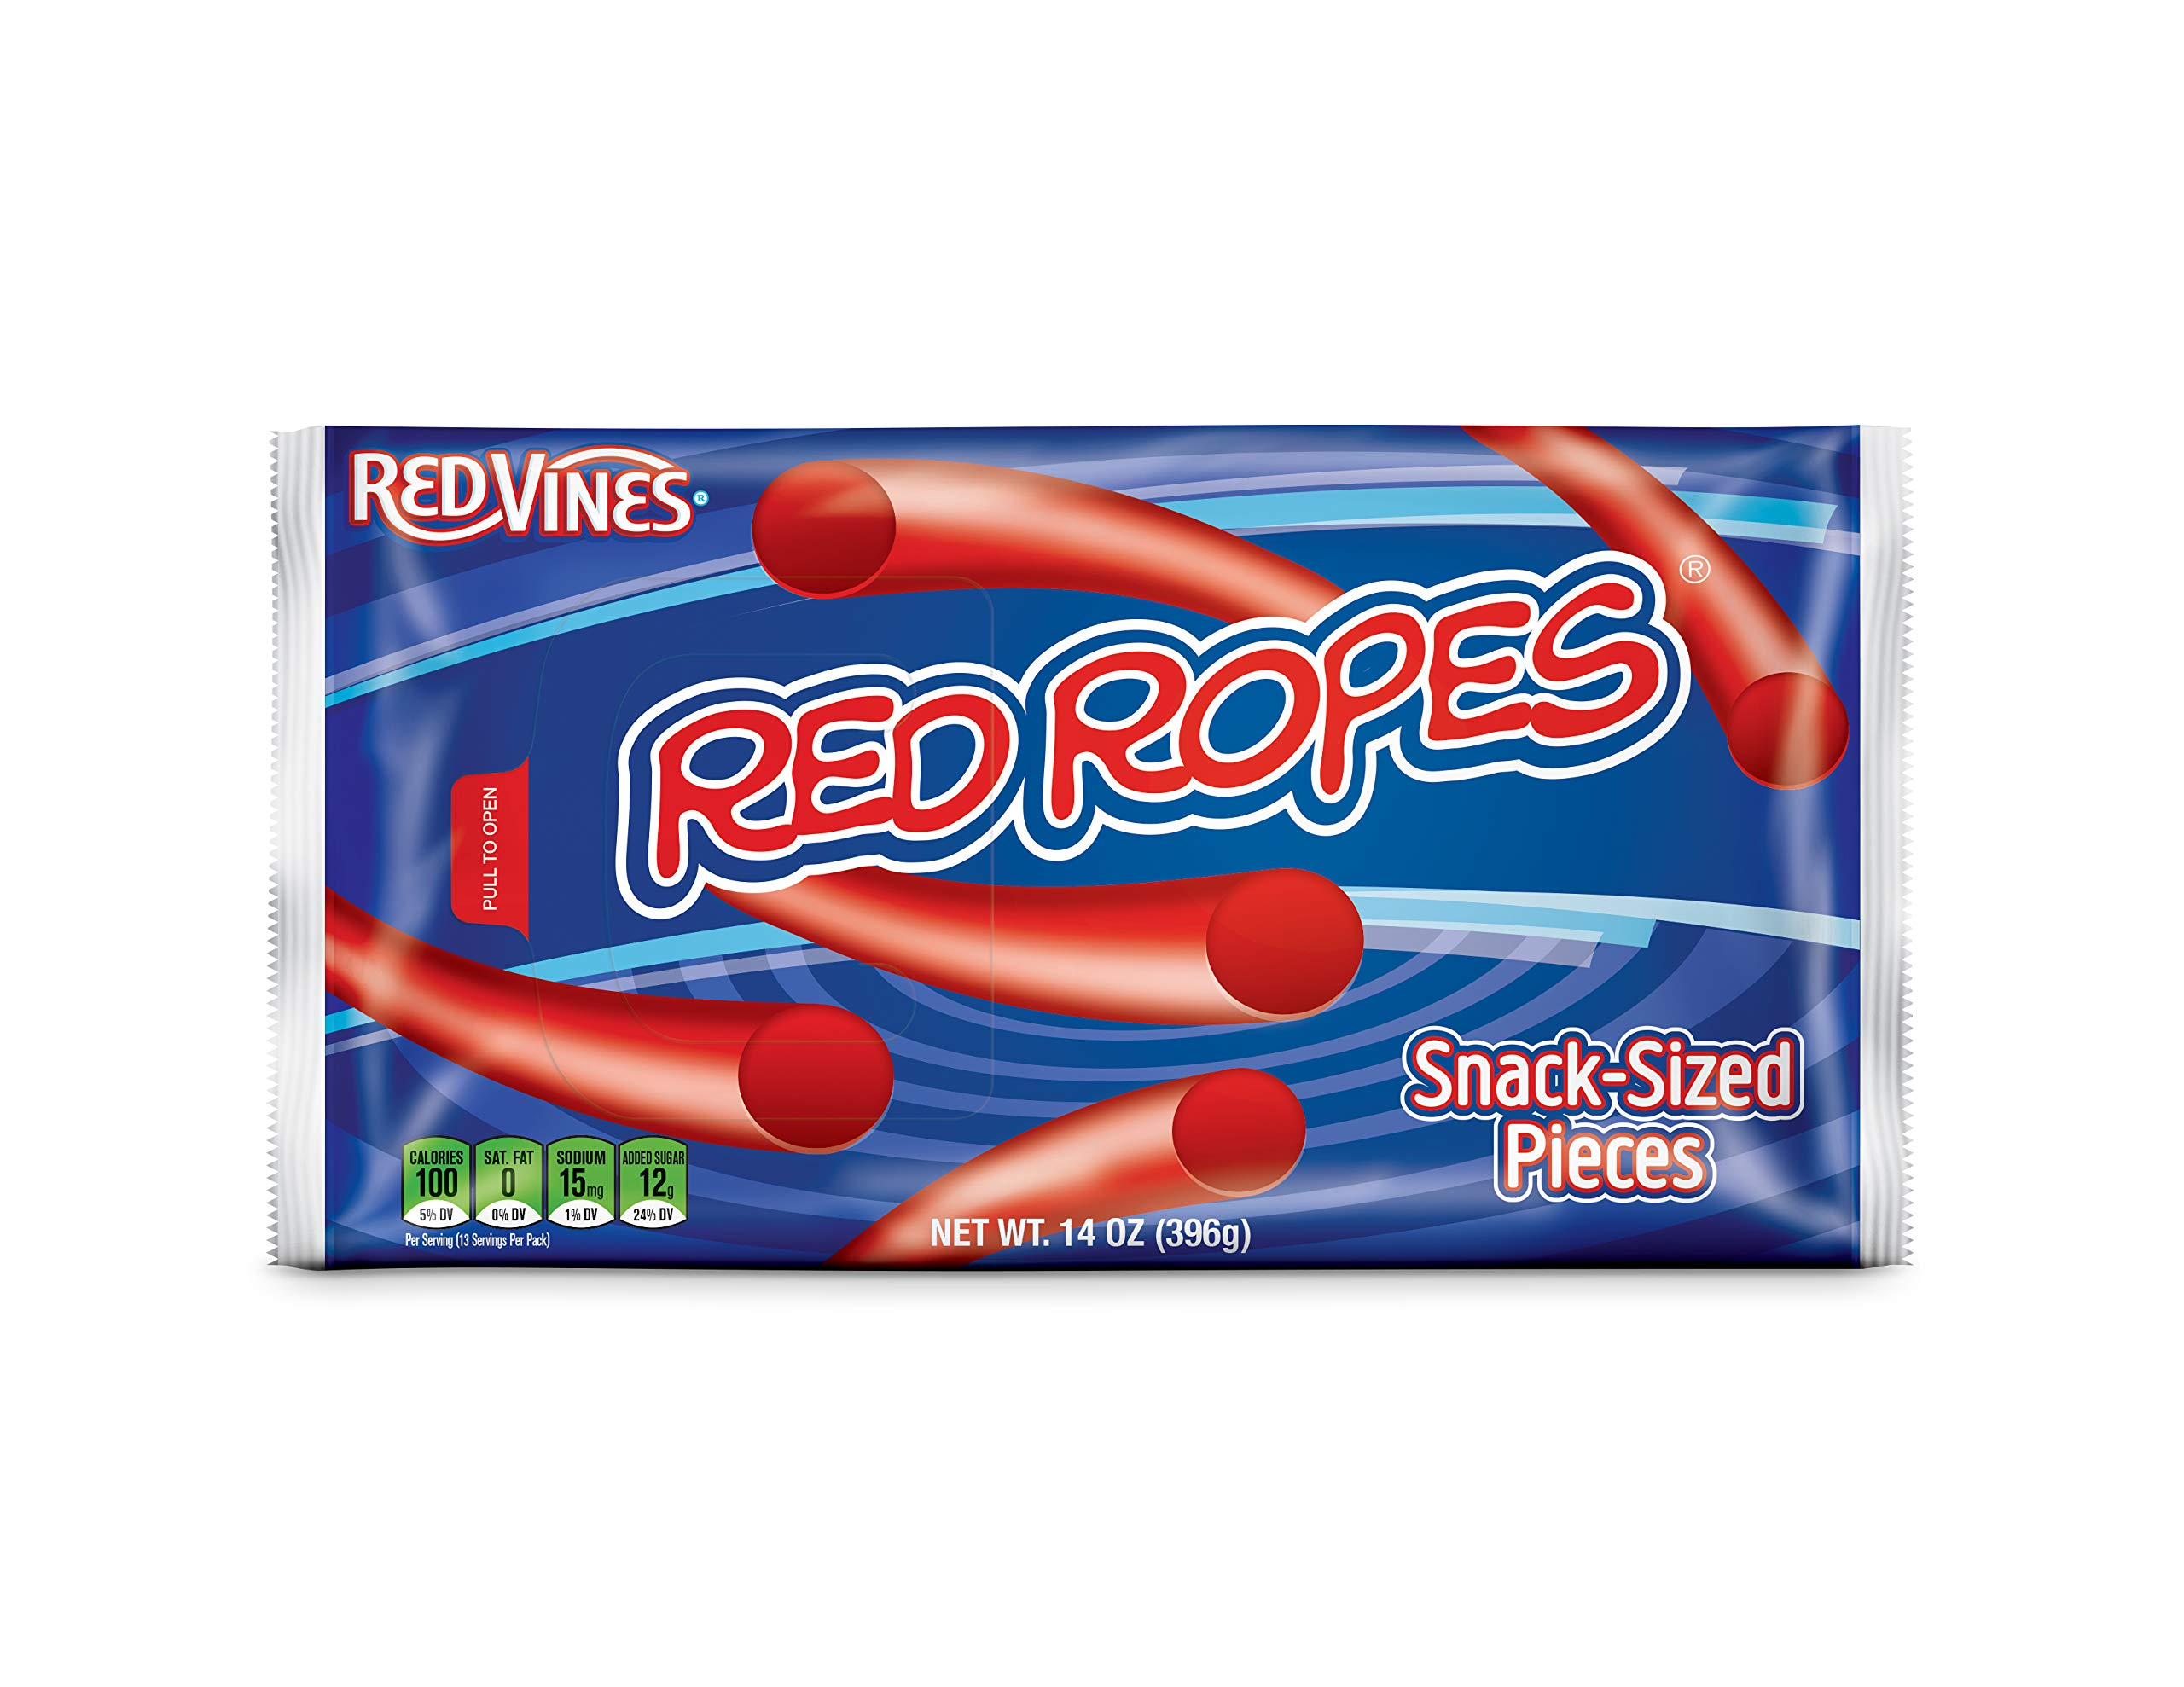 Red Vines Red Ropes, Classic American Red Licorice Rope Candy, Snack Size Treats, 12 Count